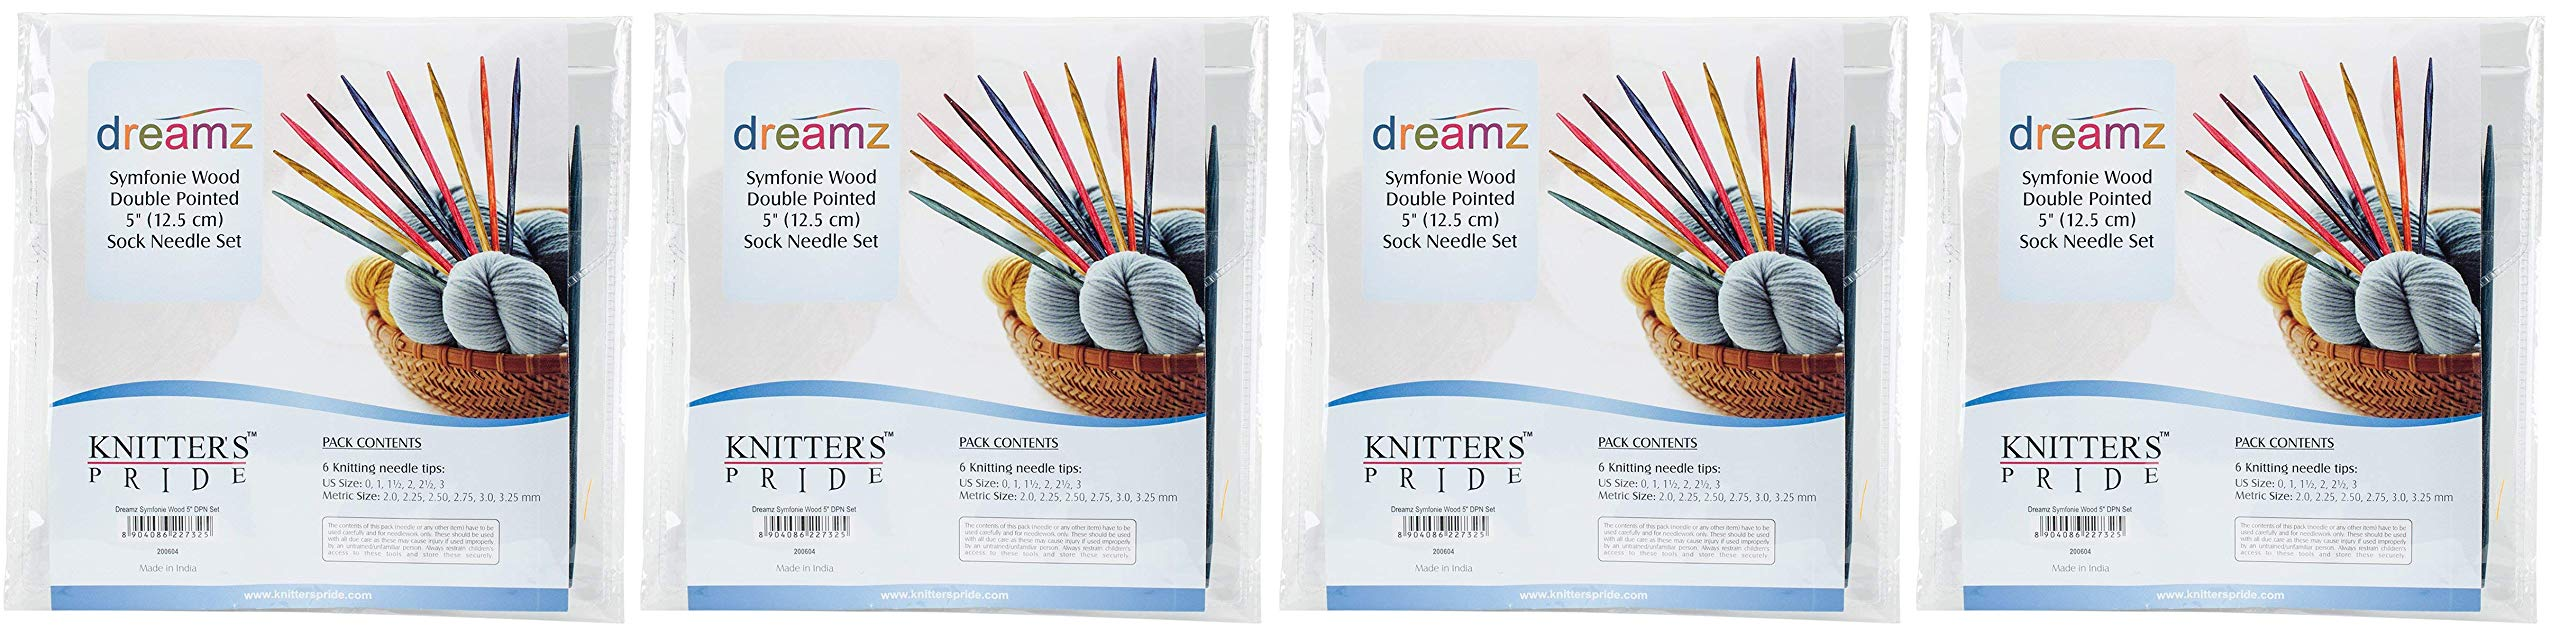 Knitter's Pride Dreamz Double Pointed Needle Socks Kit, 5 (Fоur Paсk) by Knitter's Pride (Image #1)